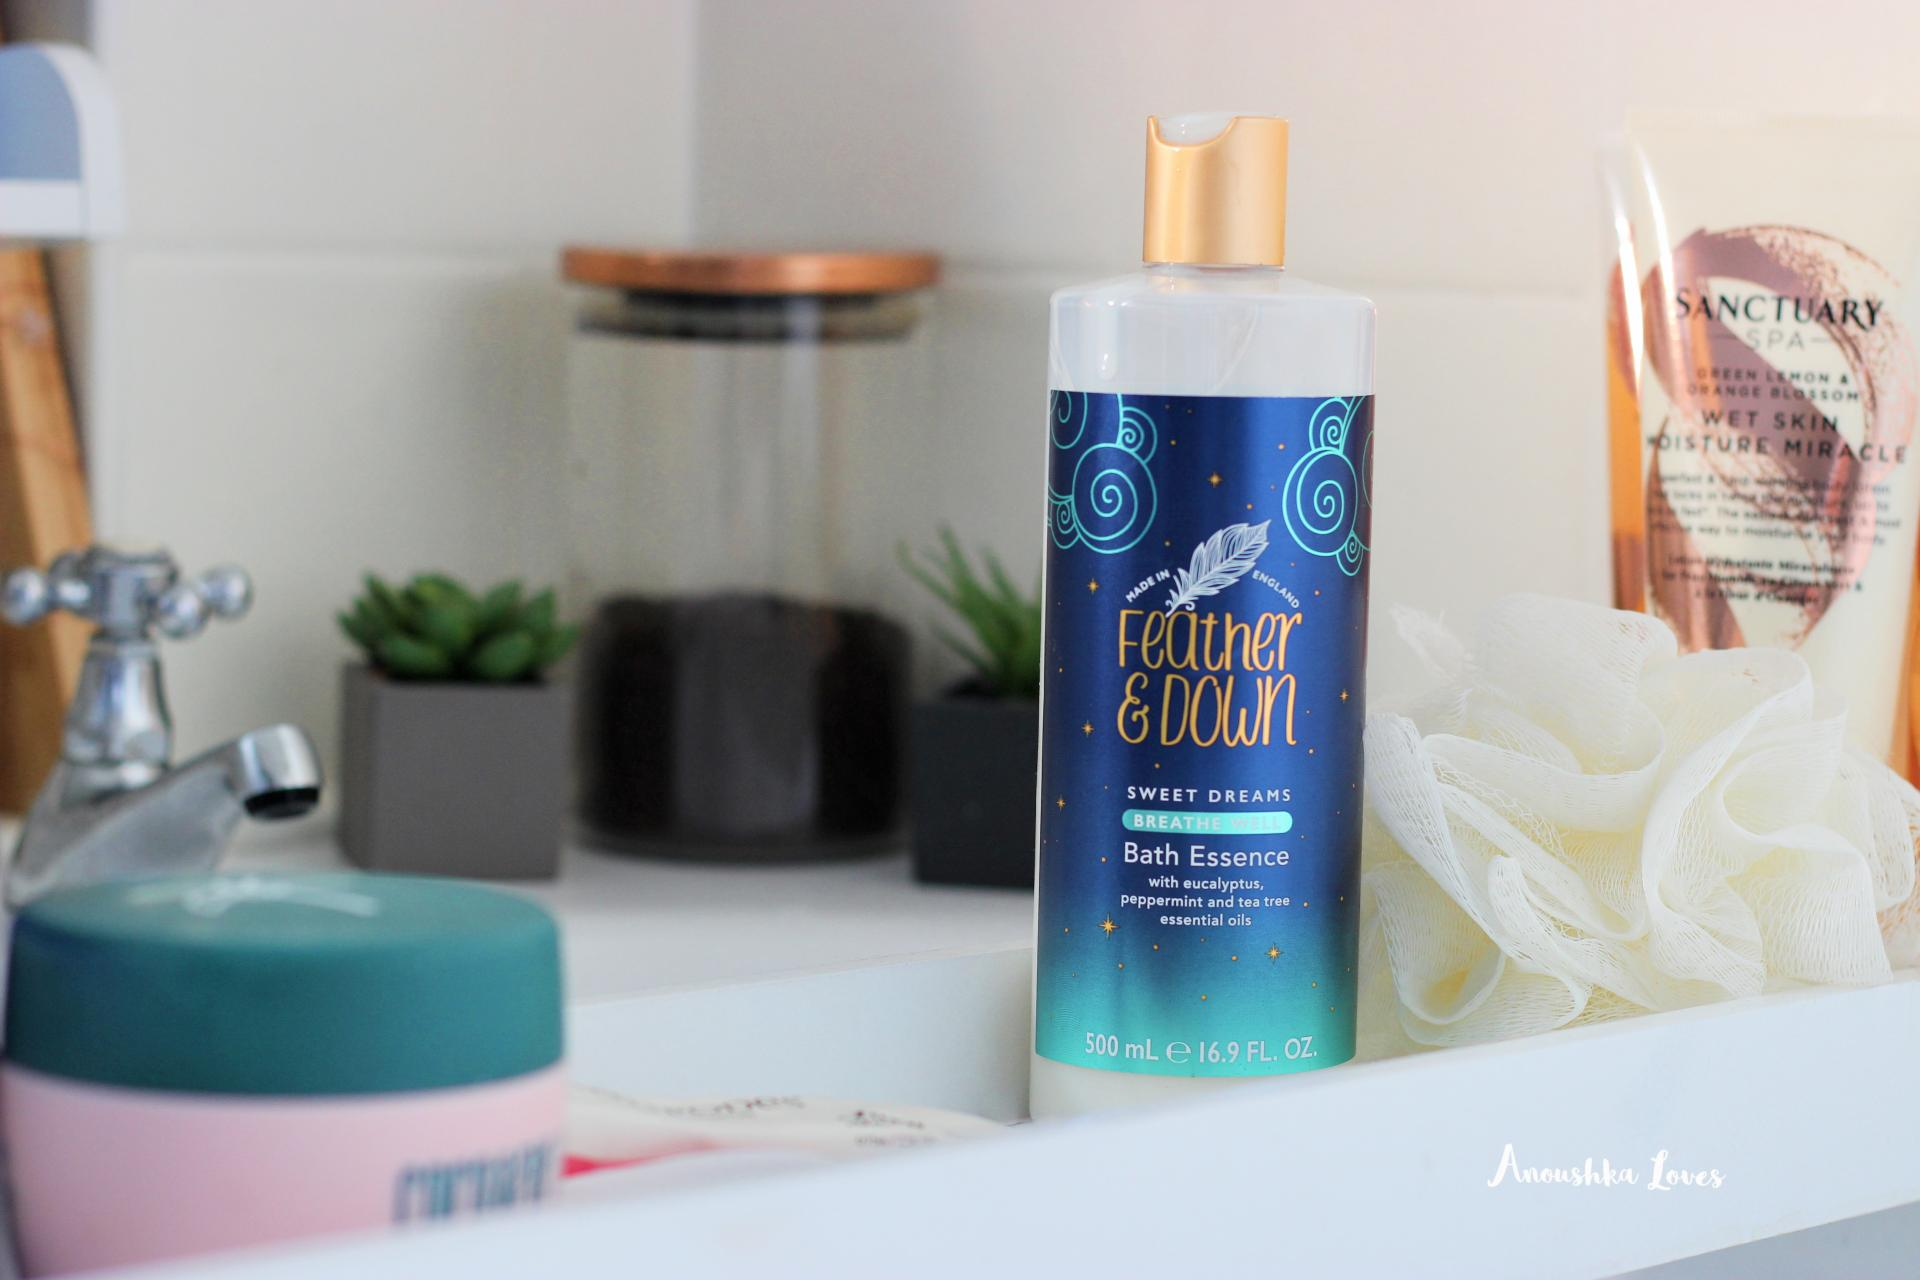 Feather & Down Bath Essence